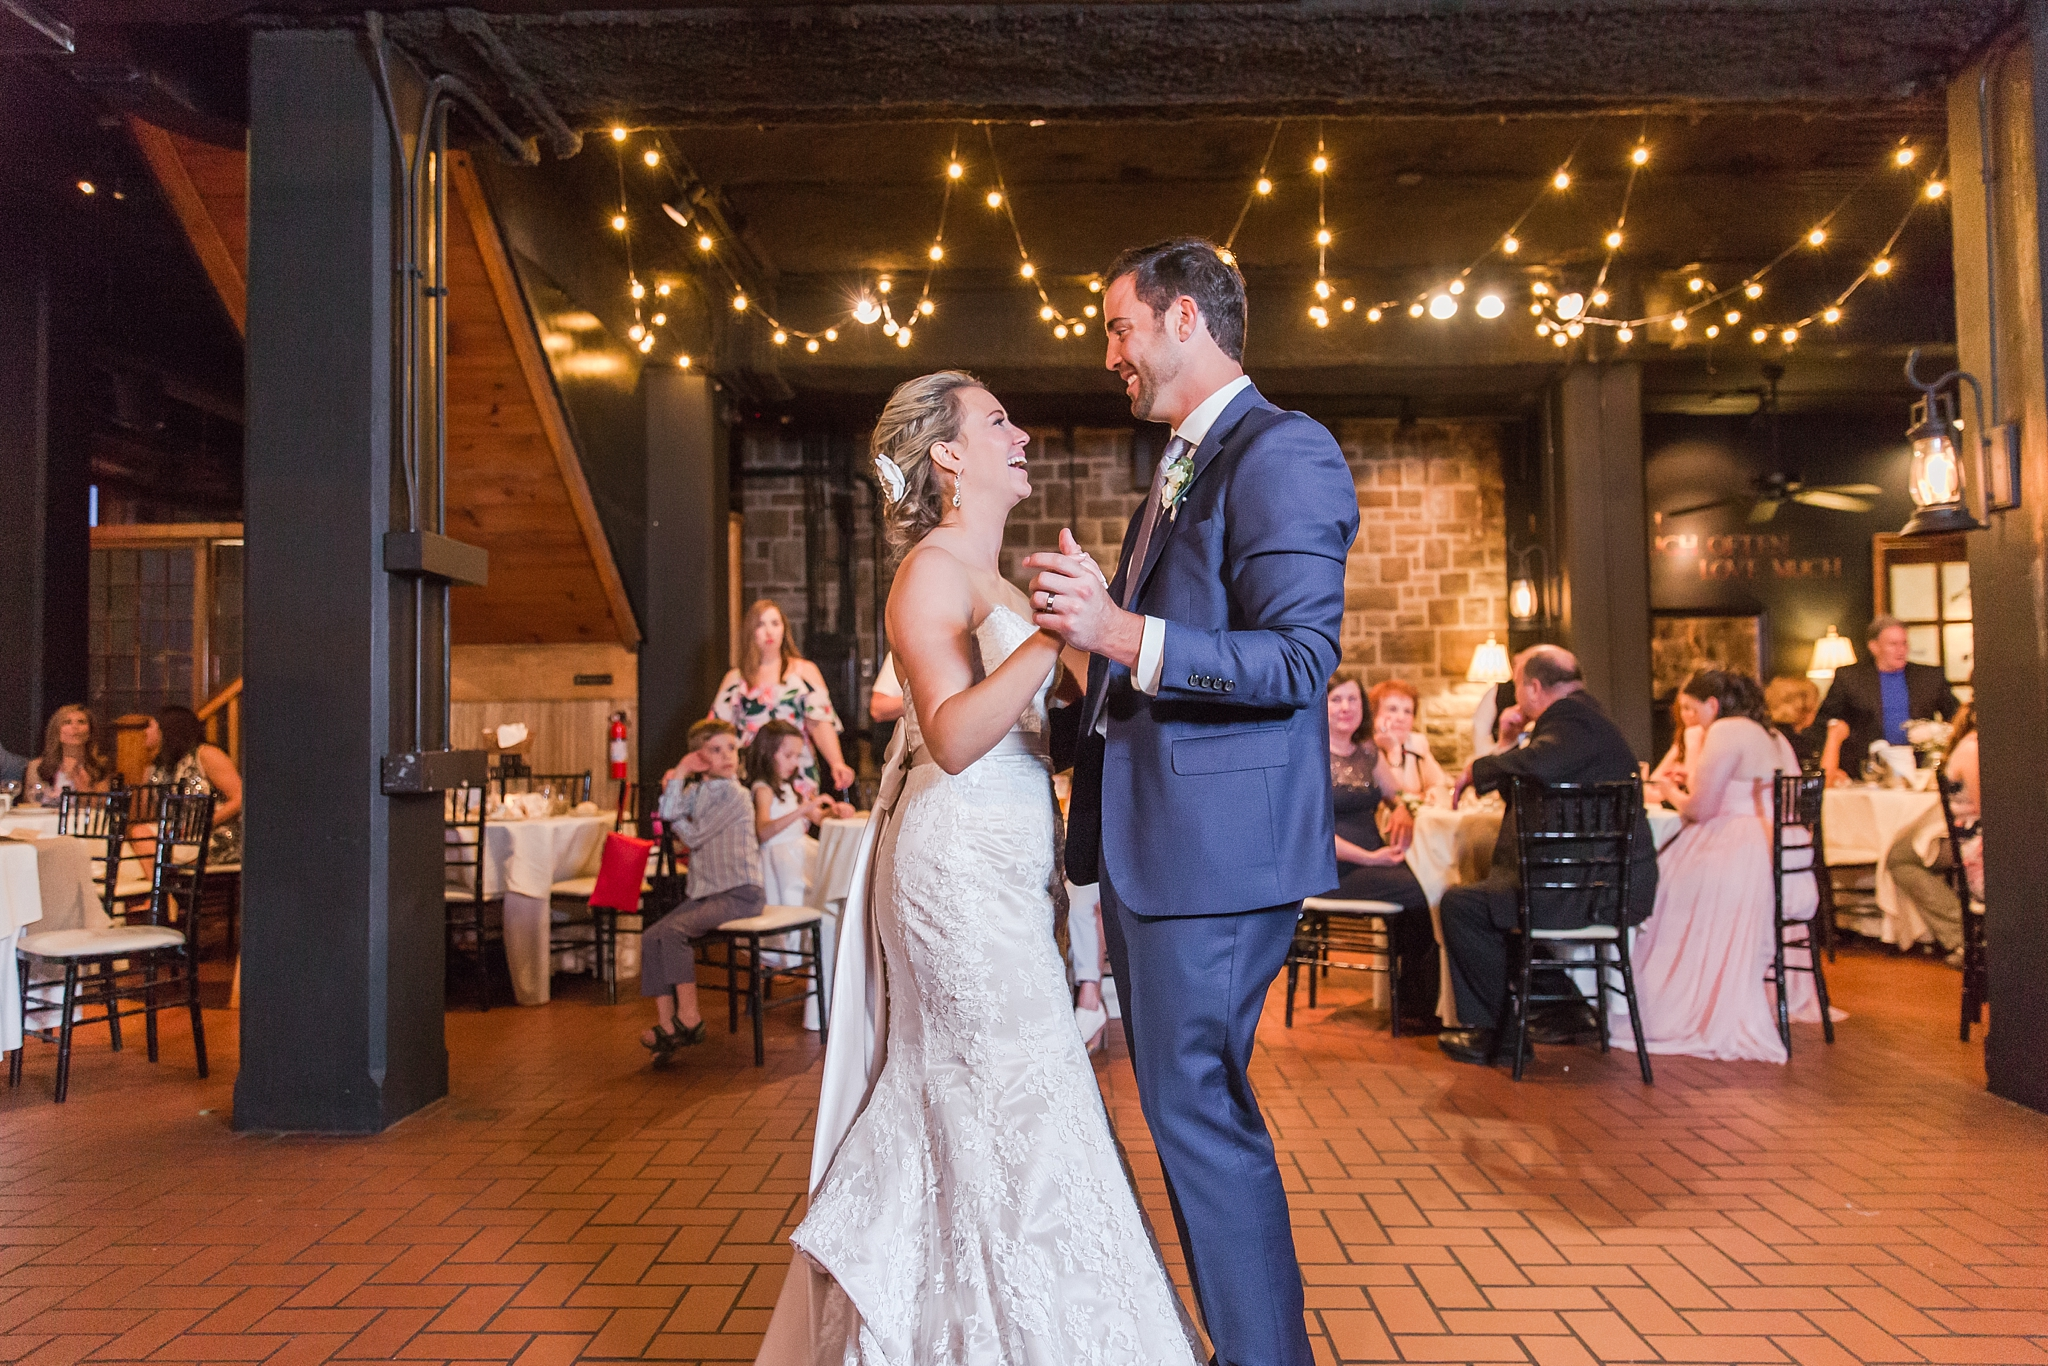 fun-candid-laid-back-wedding-photos-at-wellers-carriage-house-in-saline-michigan-and-at-the-eagle-crest-golf-resort-by-courtney-carolyn-photography_0089.jpg